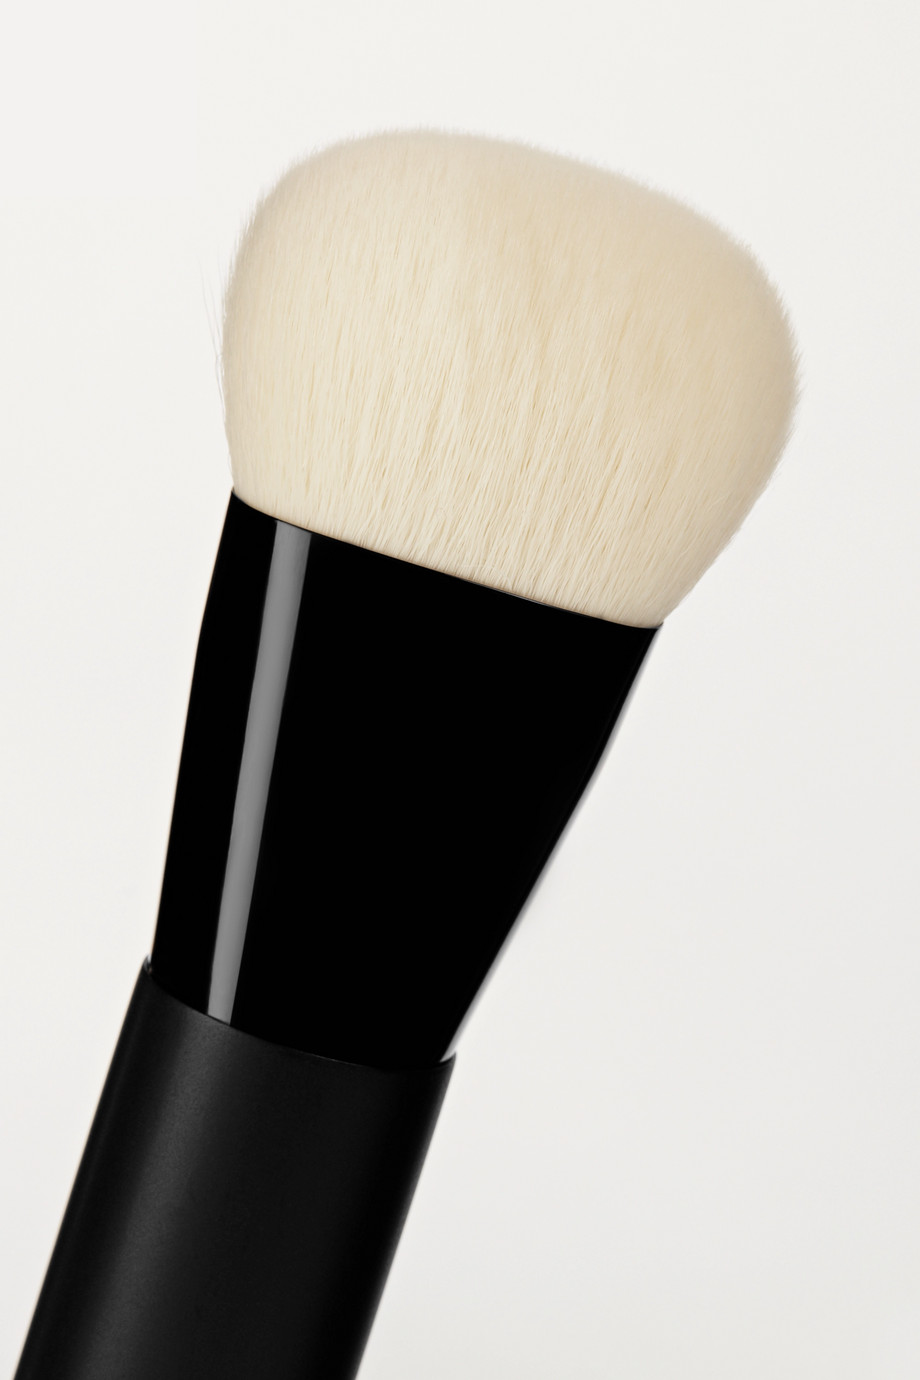 RAE MORRIS Jishaku 27 Mini Radiance Vegan Brush